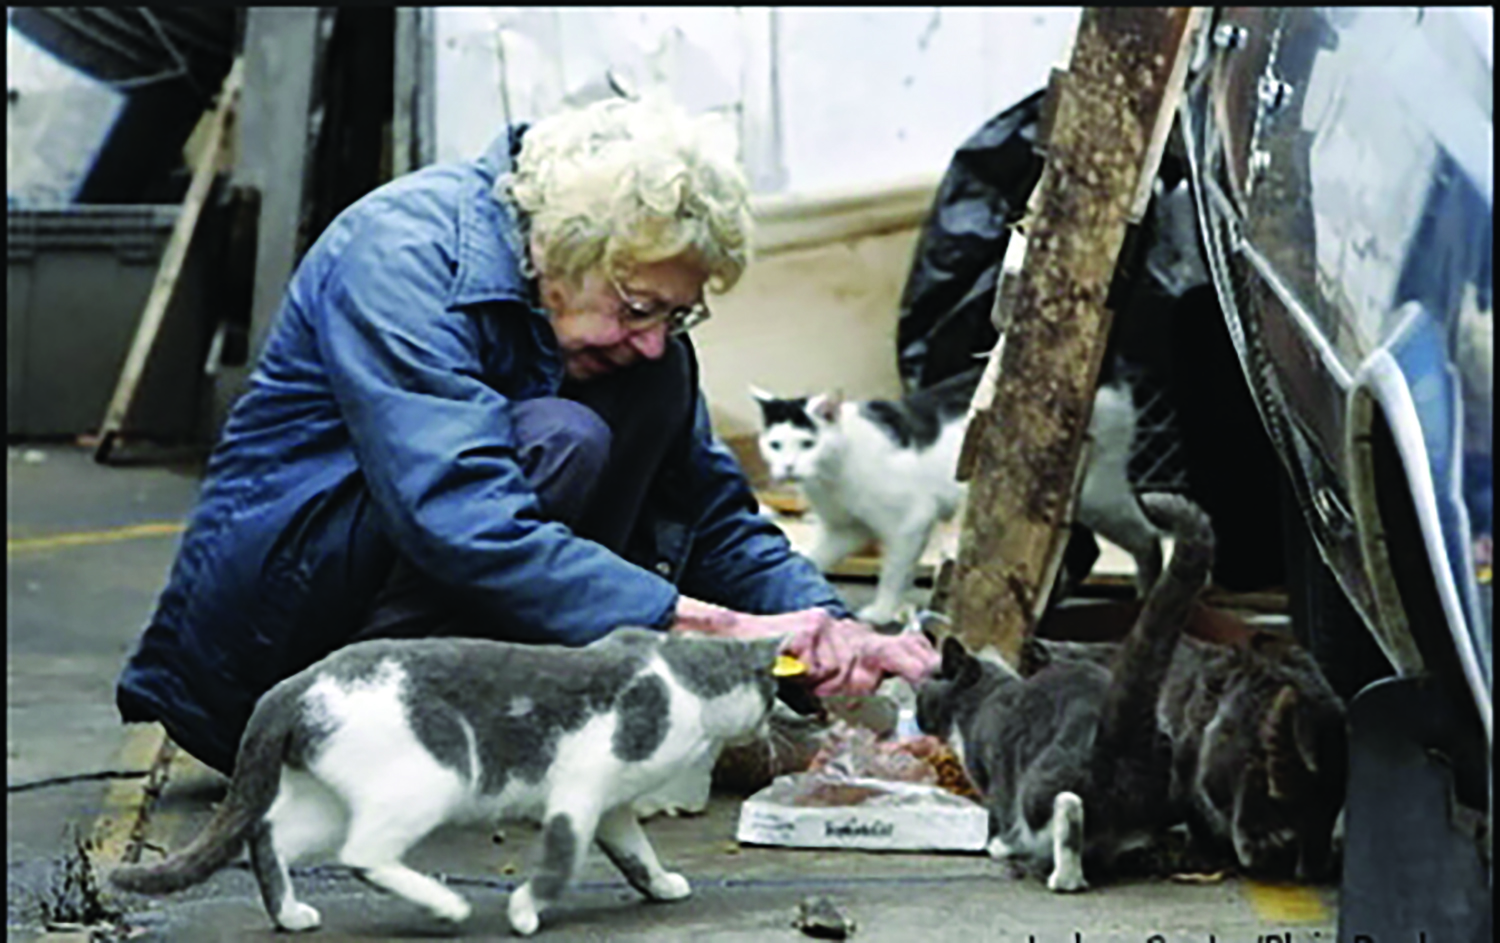 Kristen Grandinetti tried to pass a law that would put women like this one in jail for the crime she is committing: feeding stray cats. After an expose in the Reporter the proposed law unraveled as thousands of cat lovers complained.